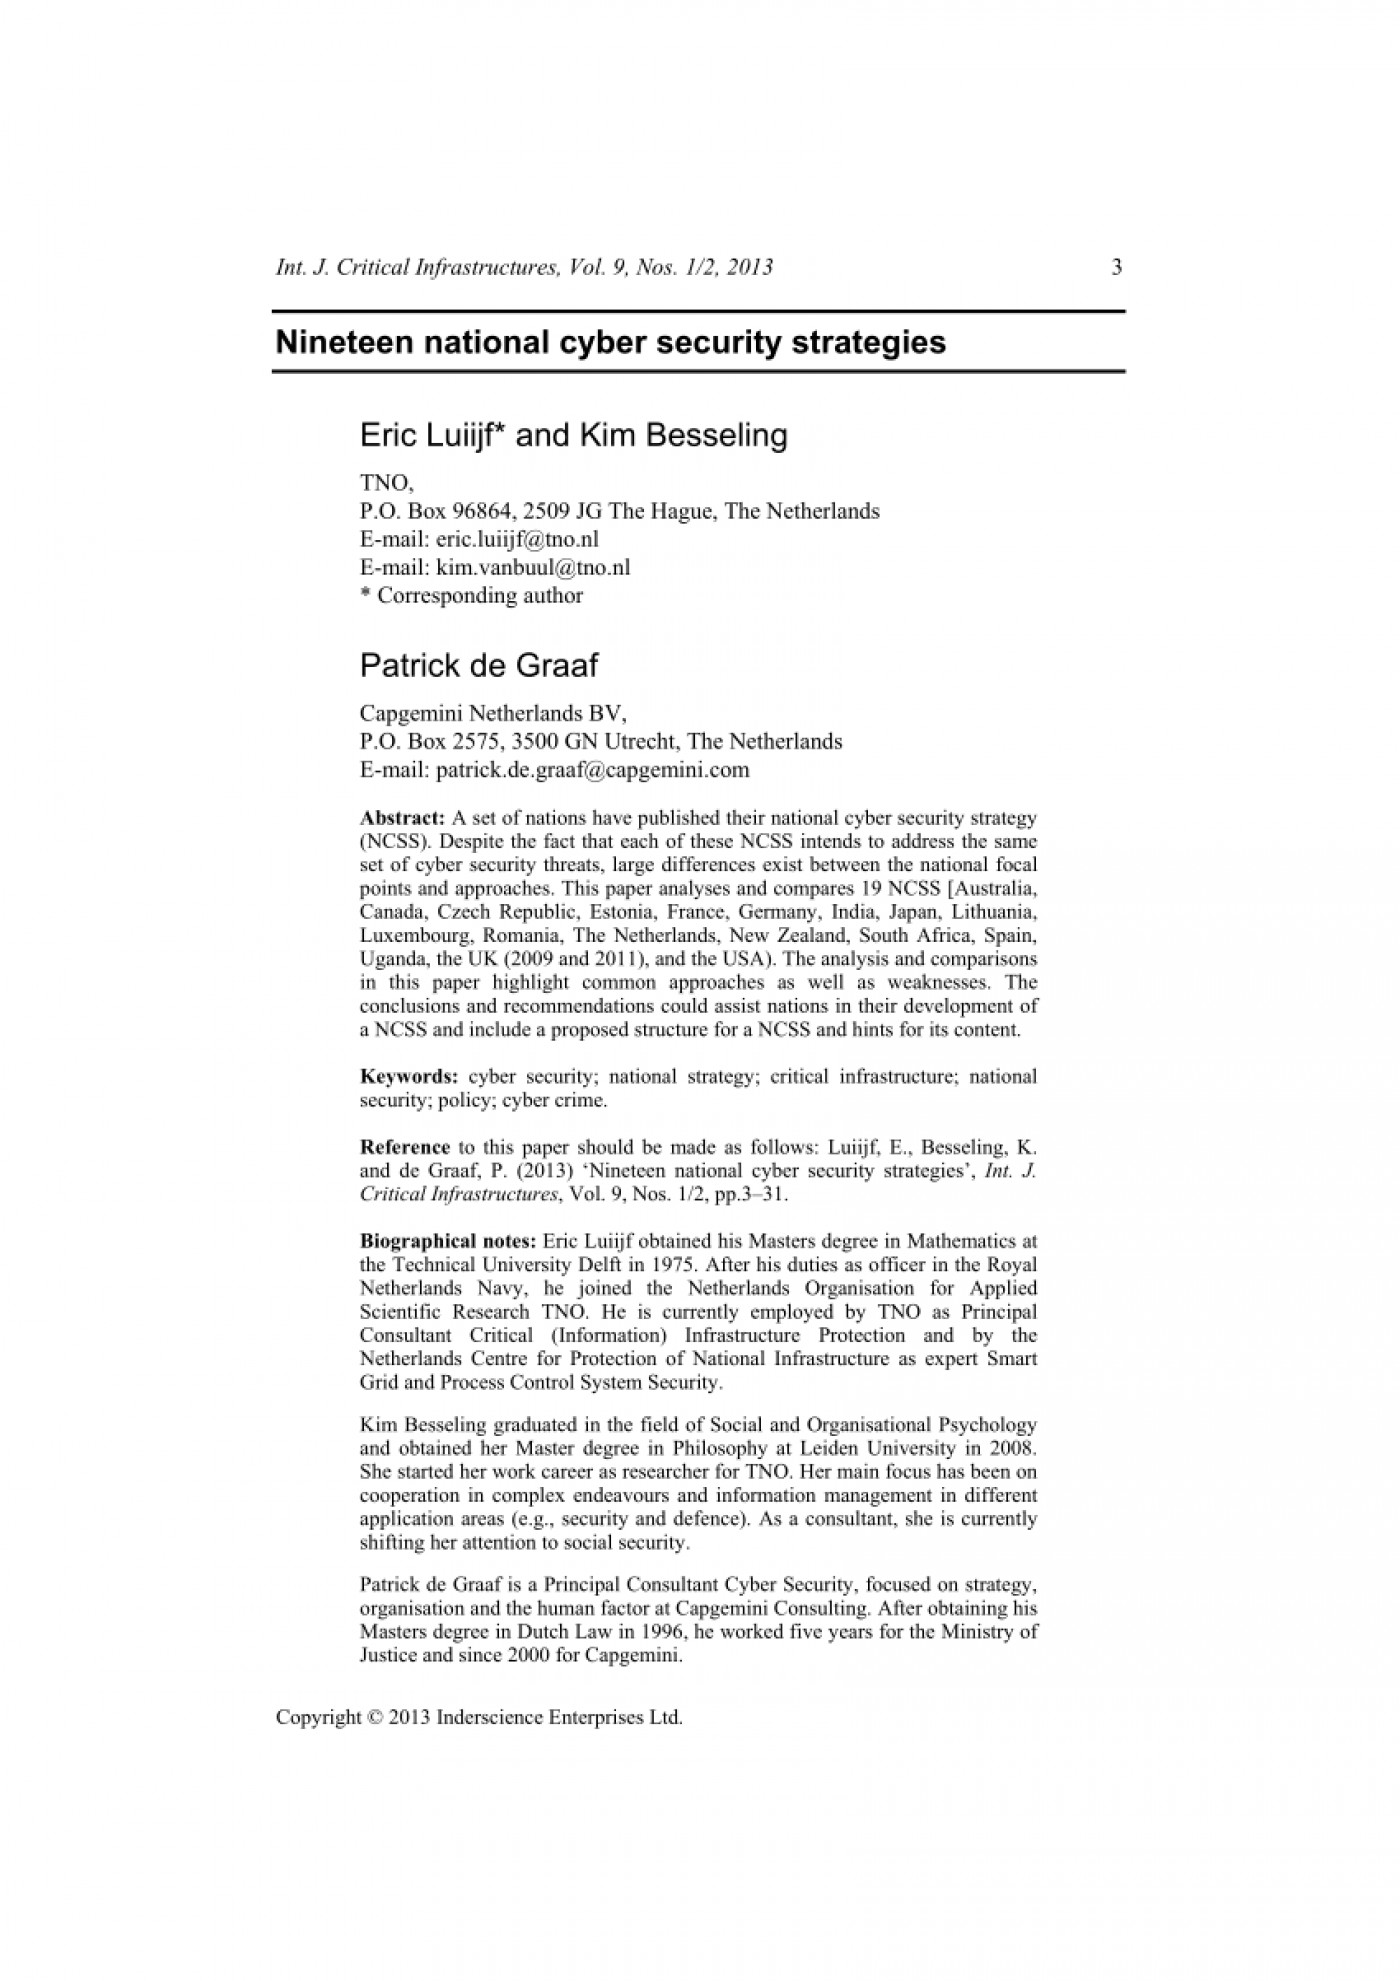 019 Cyber Security Research Paper Dreaded 2019 Papers 2018 1400